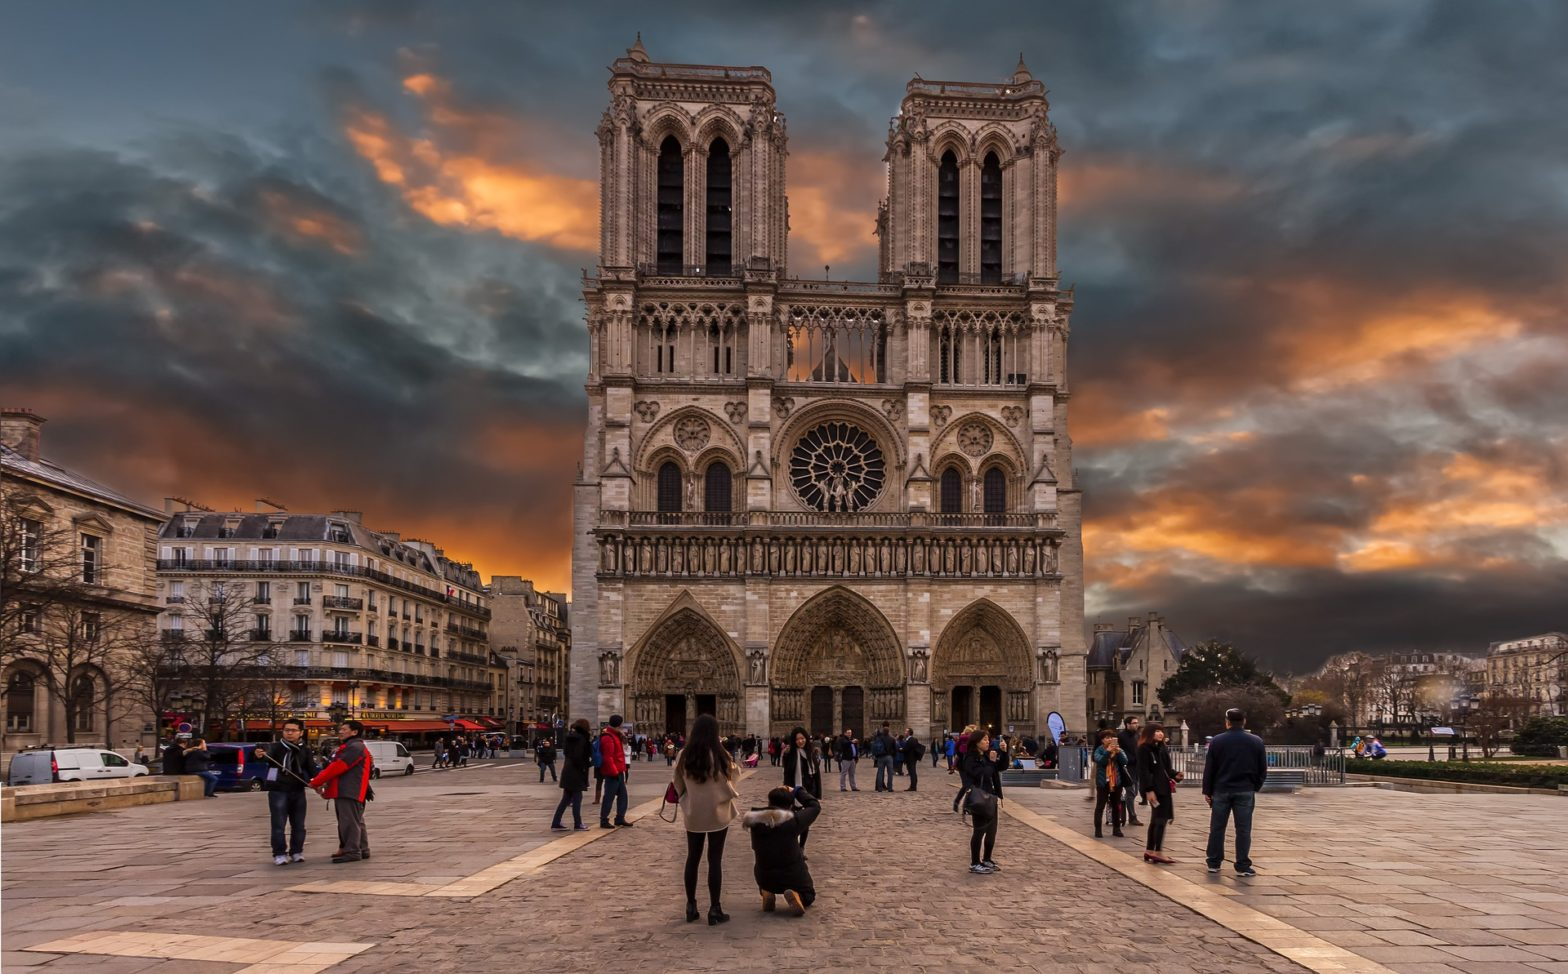 France The Tour Interest of Paris and Key History